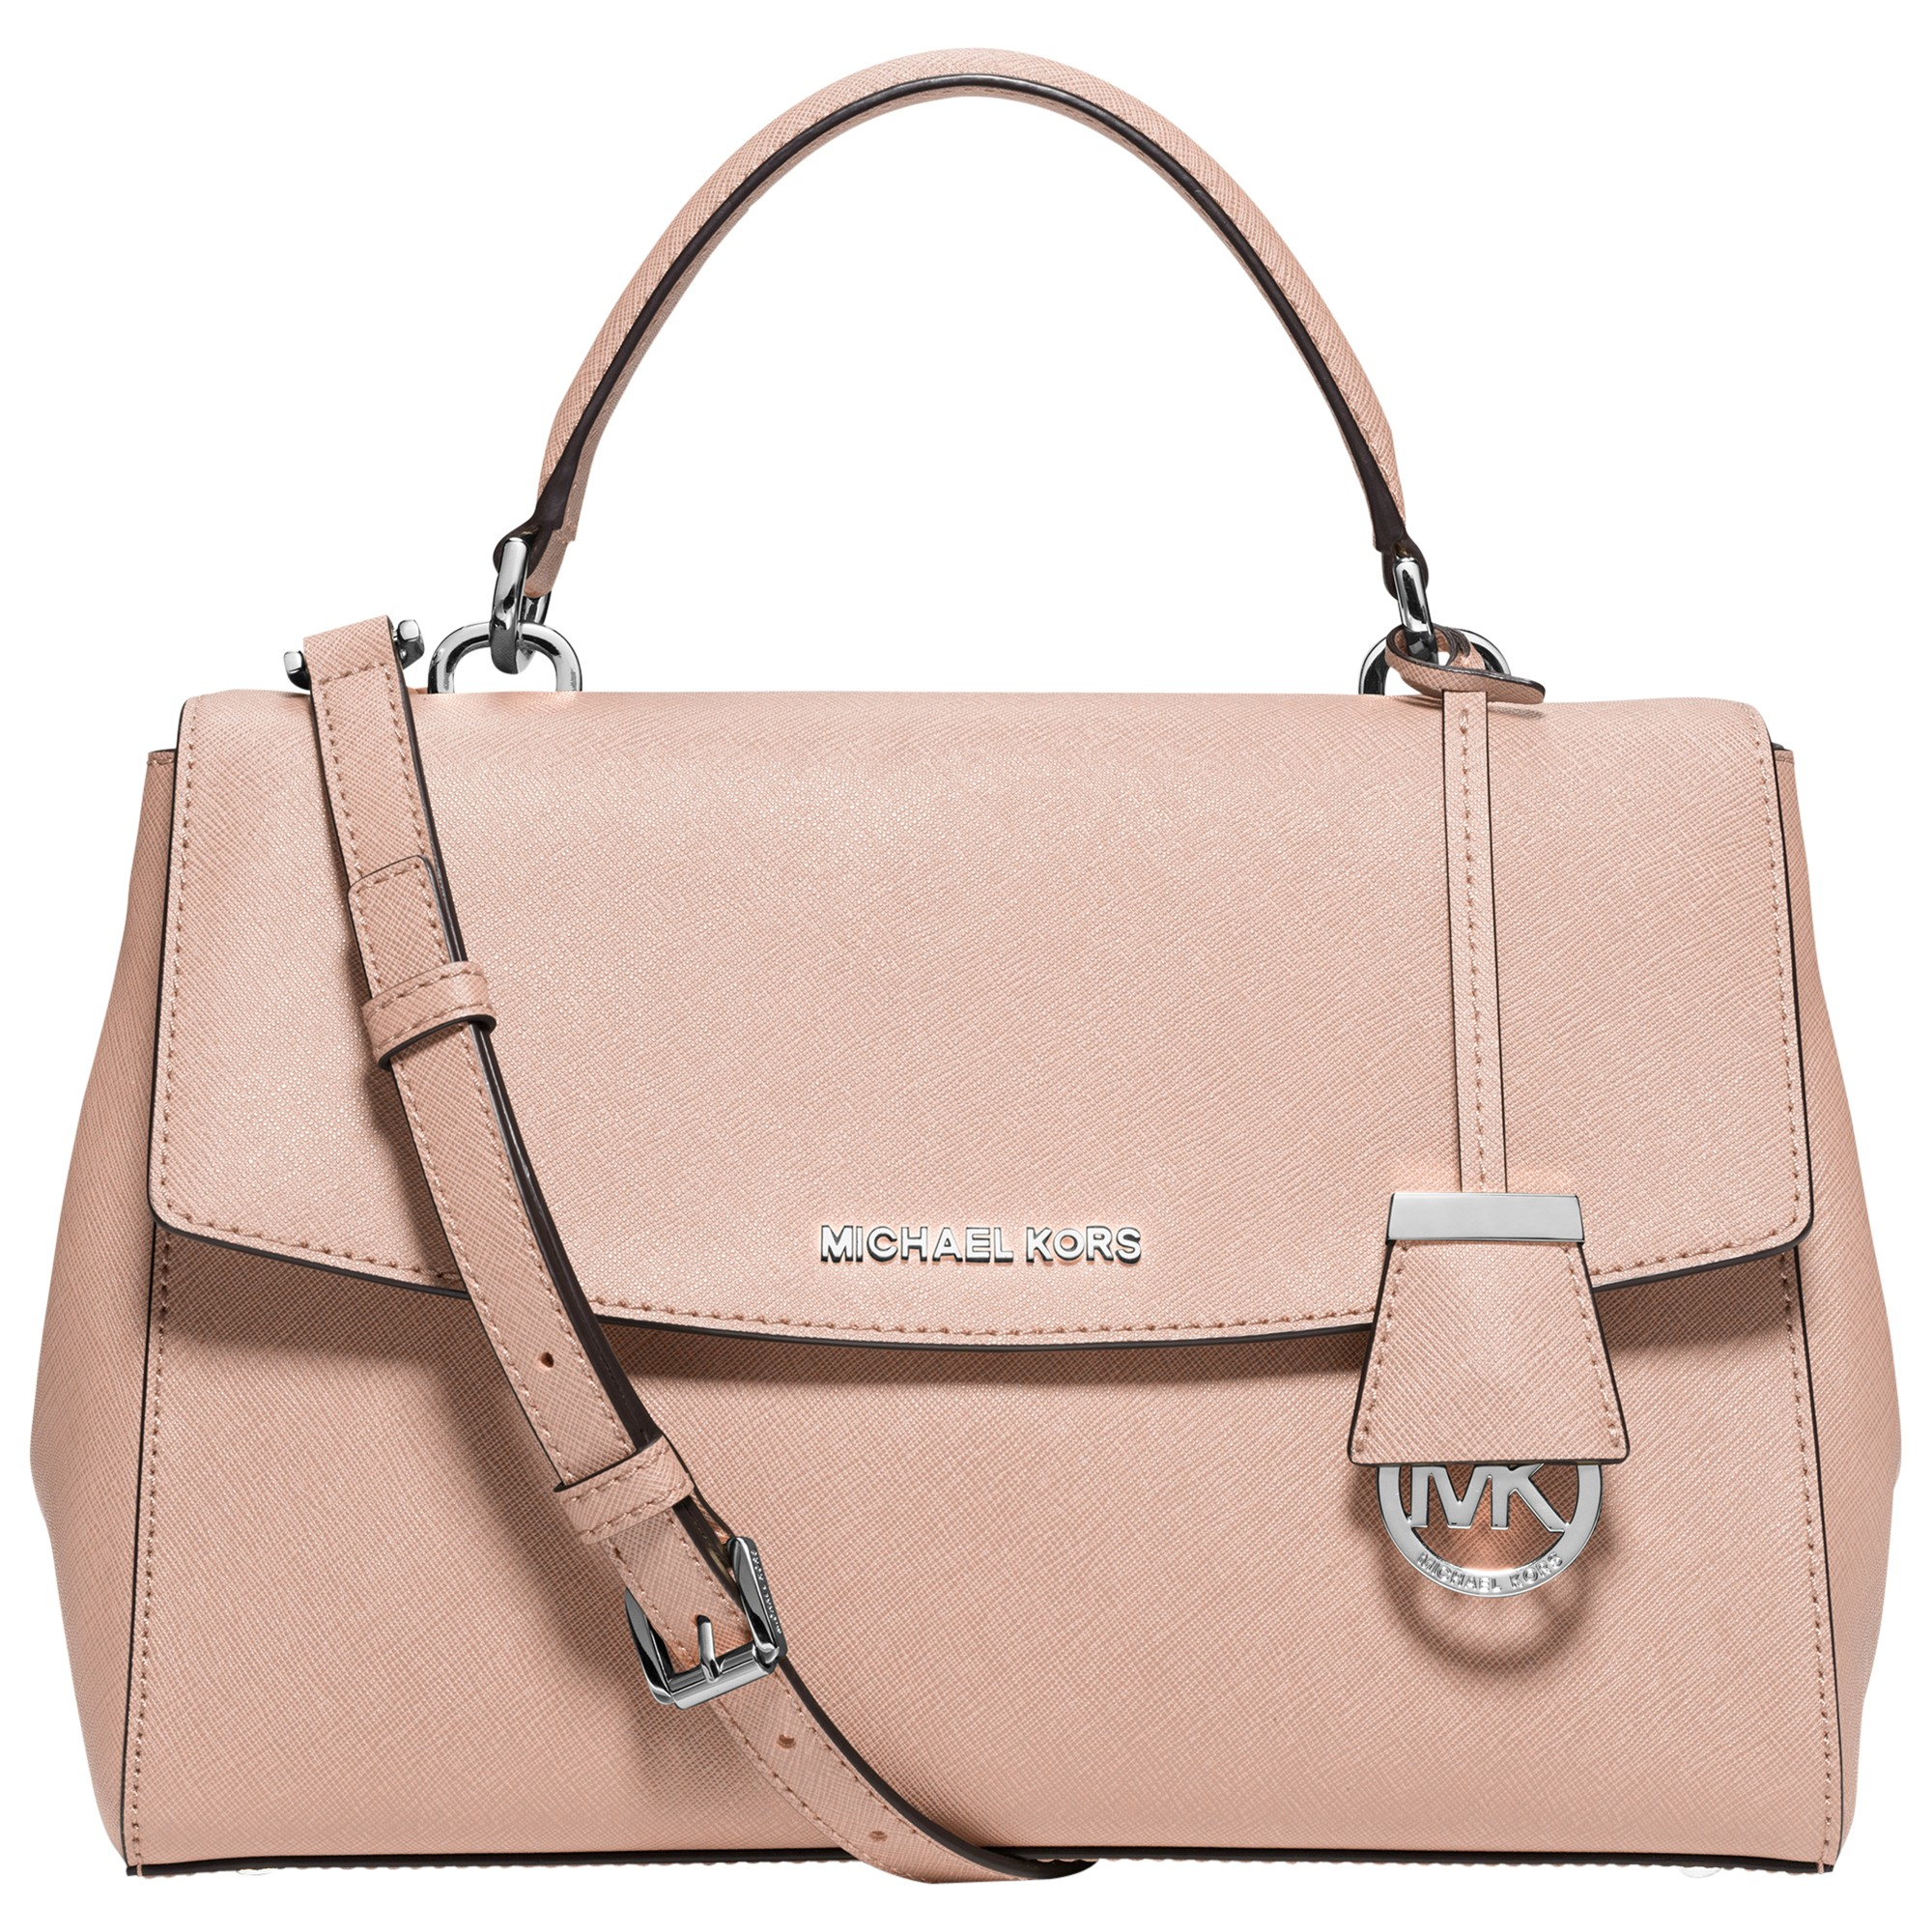 f0370c408f260 ... Small Saffiano Leather Satchel ♡ - YouTube Michael michael kors Ava  Medium Leather Satchel in Pink Lys ...